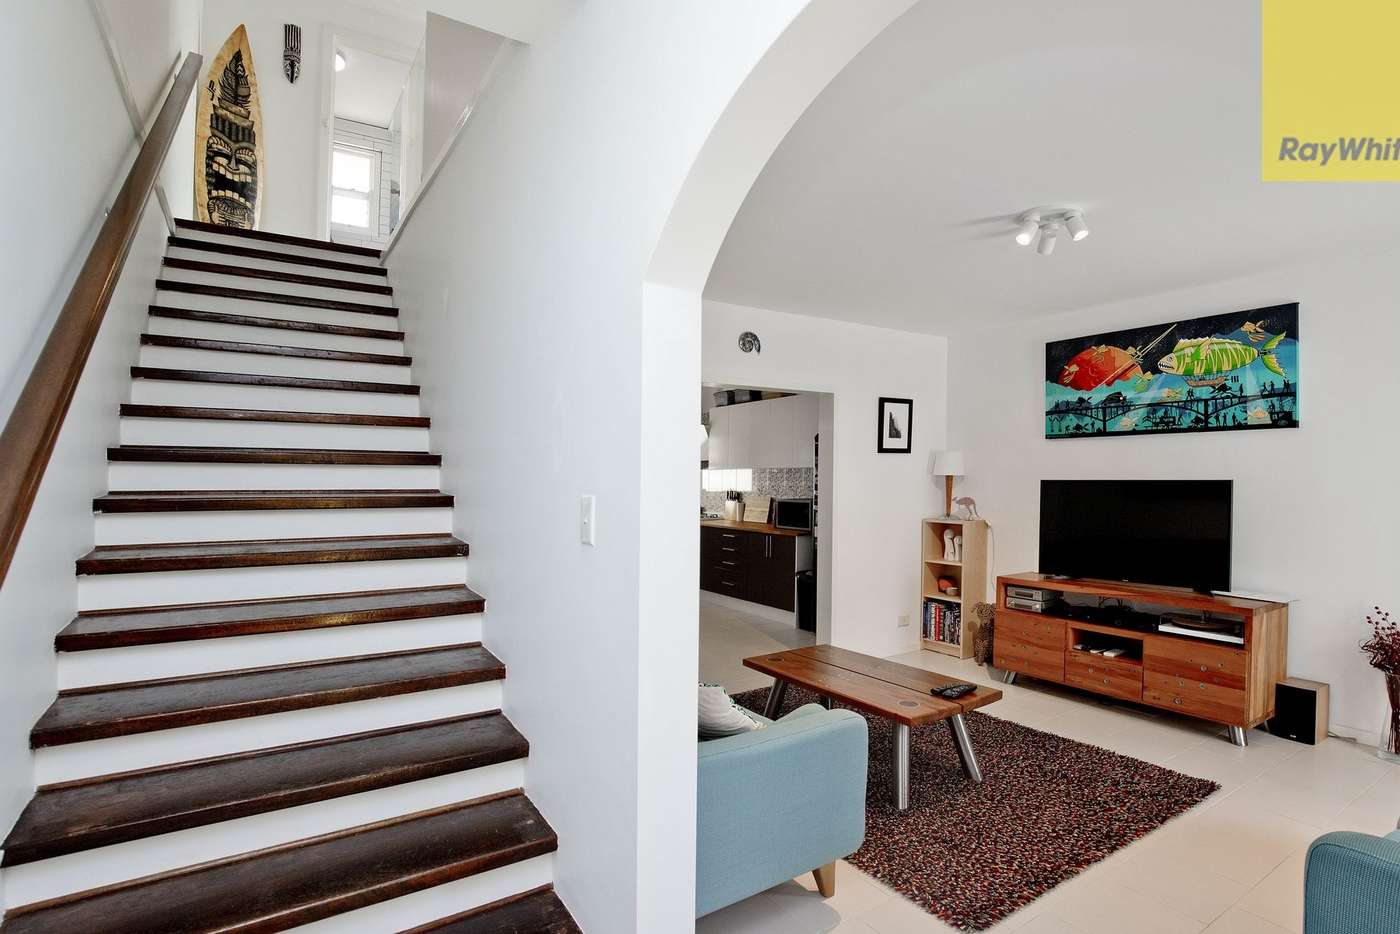 Main view of Homely townhouse listing, 7/38 Simcock Street, West Beach SA 5024